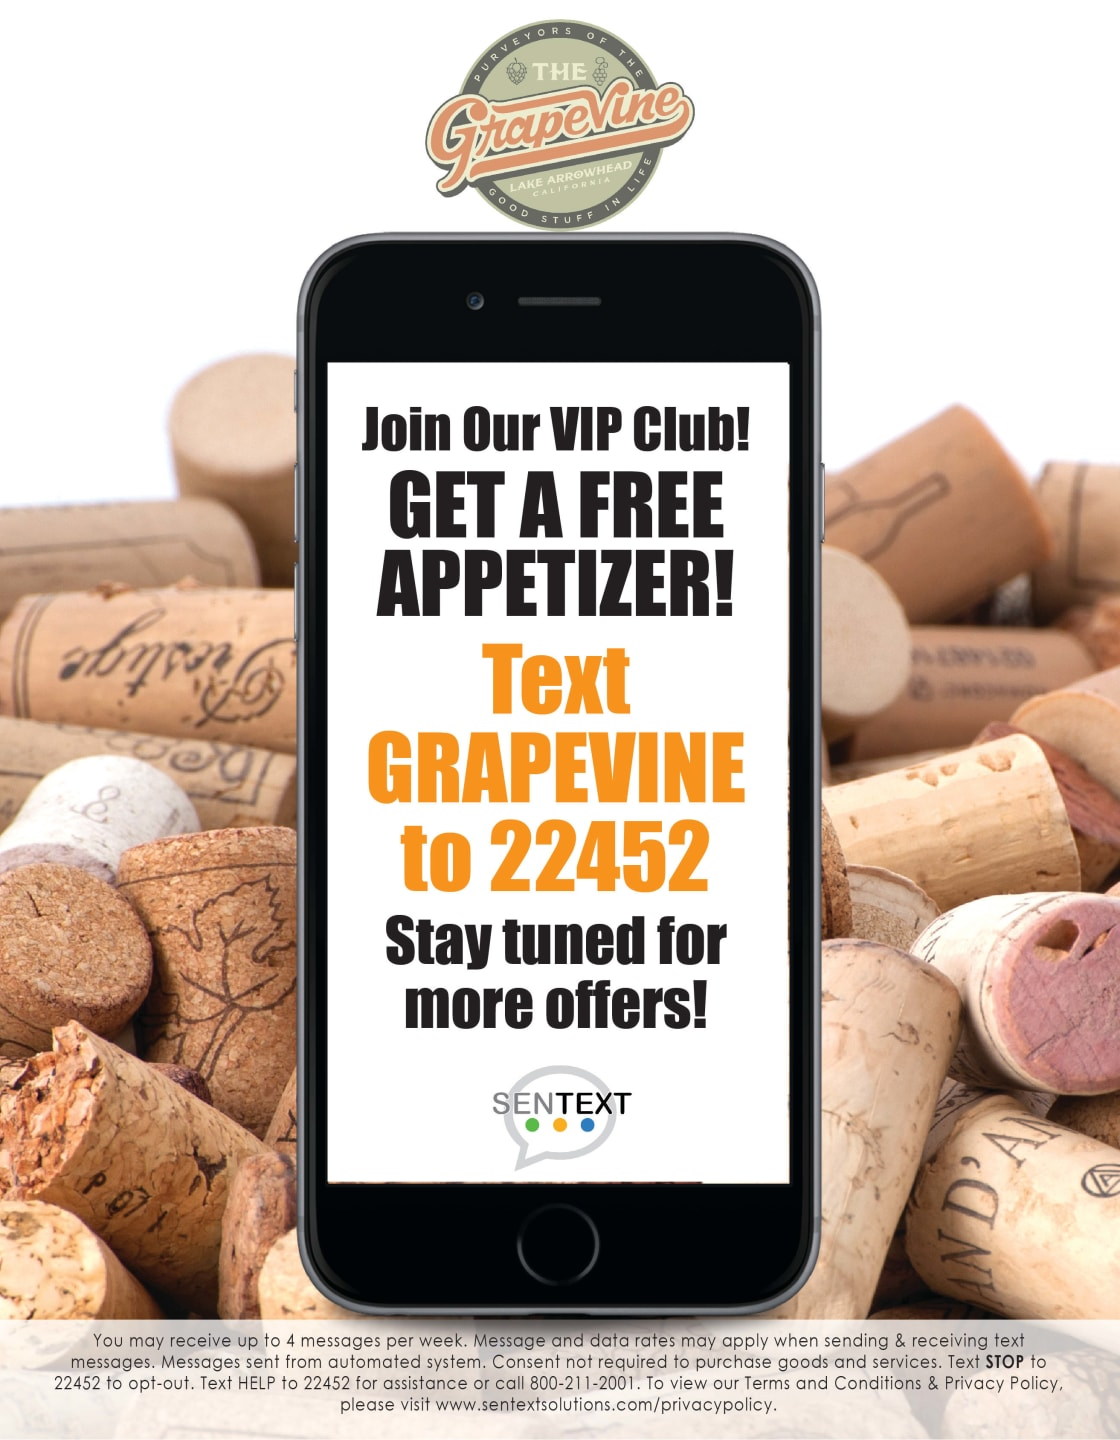 Join our VIP Club and get a free appetizer. Text the word Grapevine to 22452. Stay tuned for more offers.